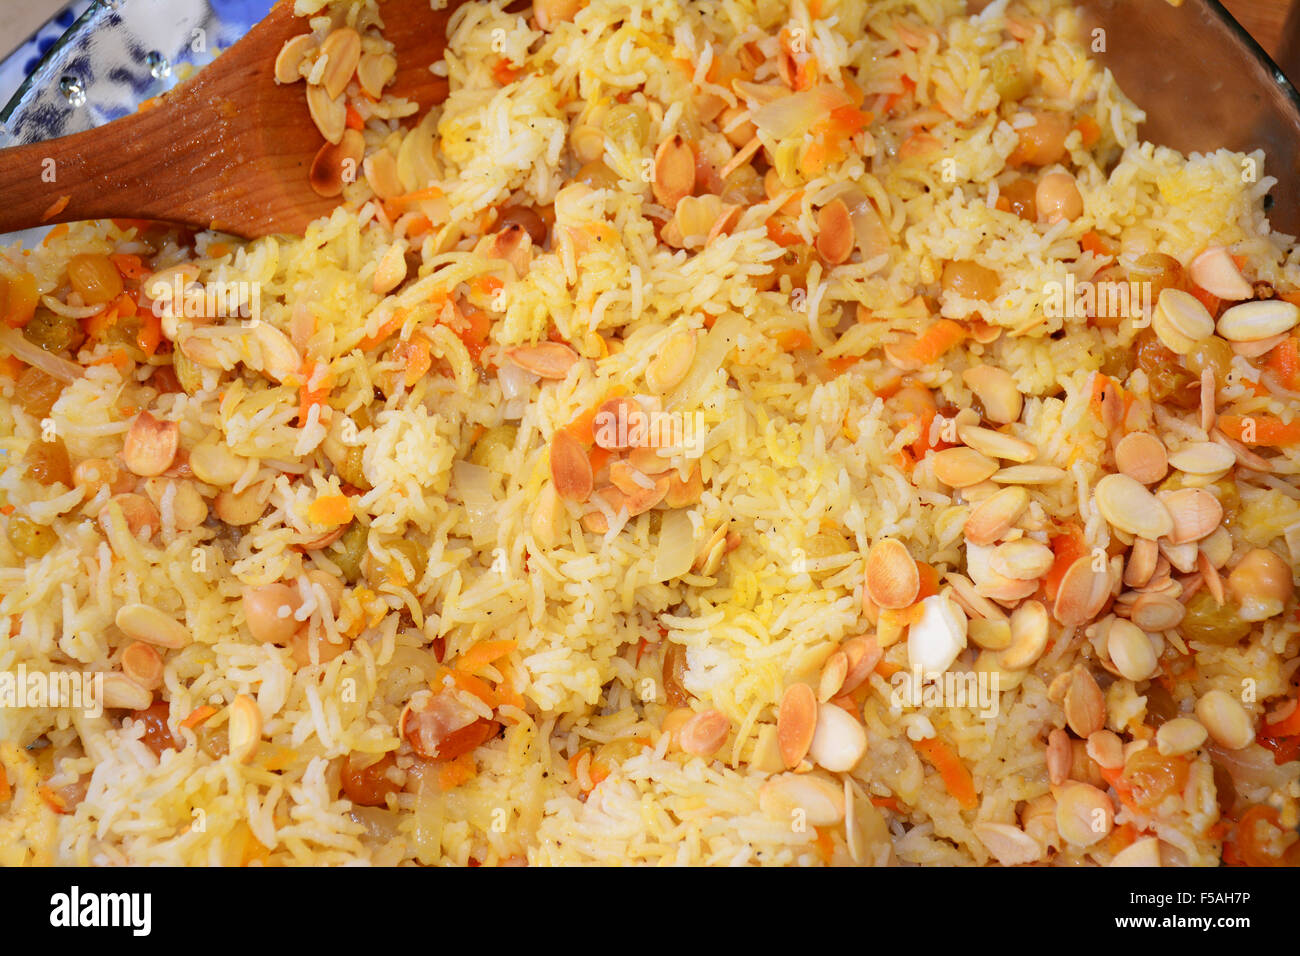 Rice and almonds dish - Stock Image